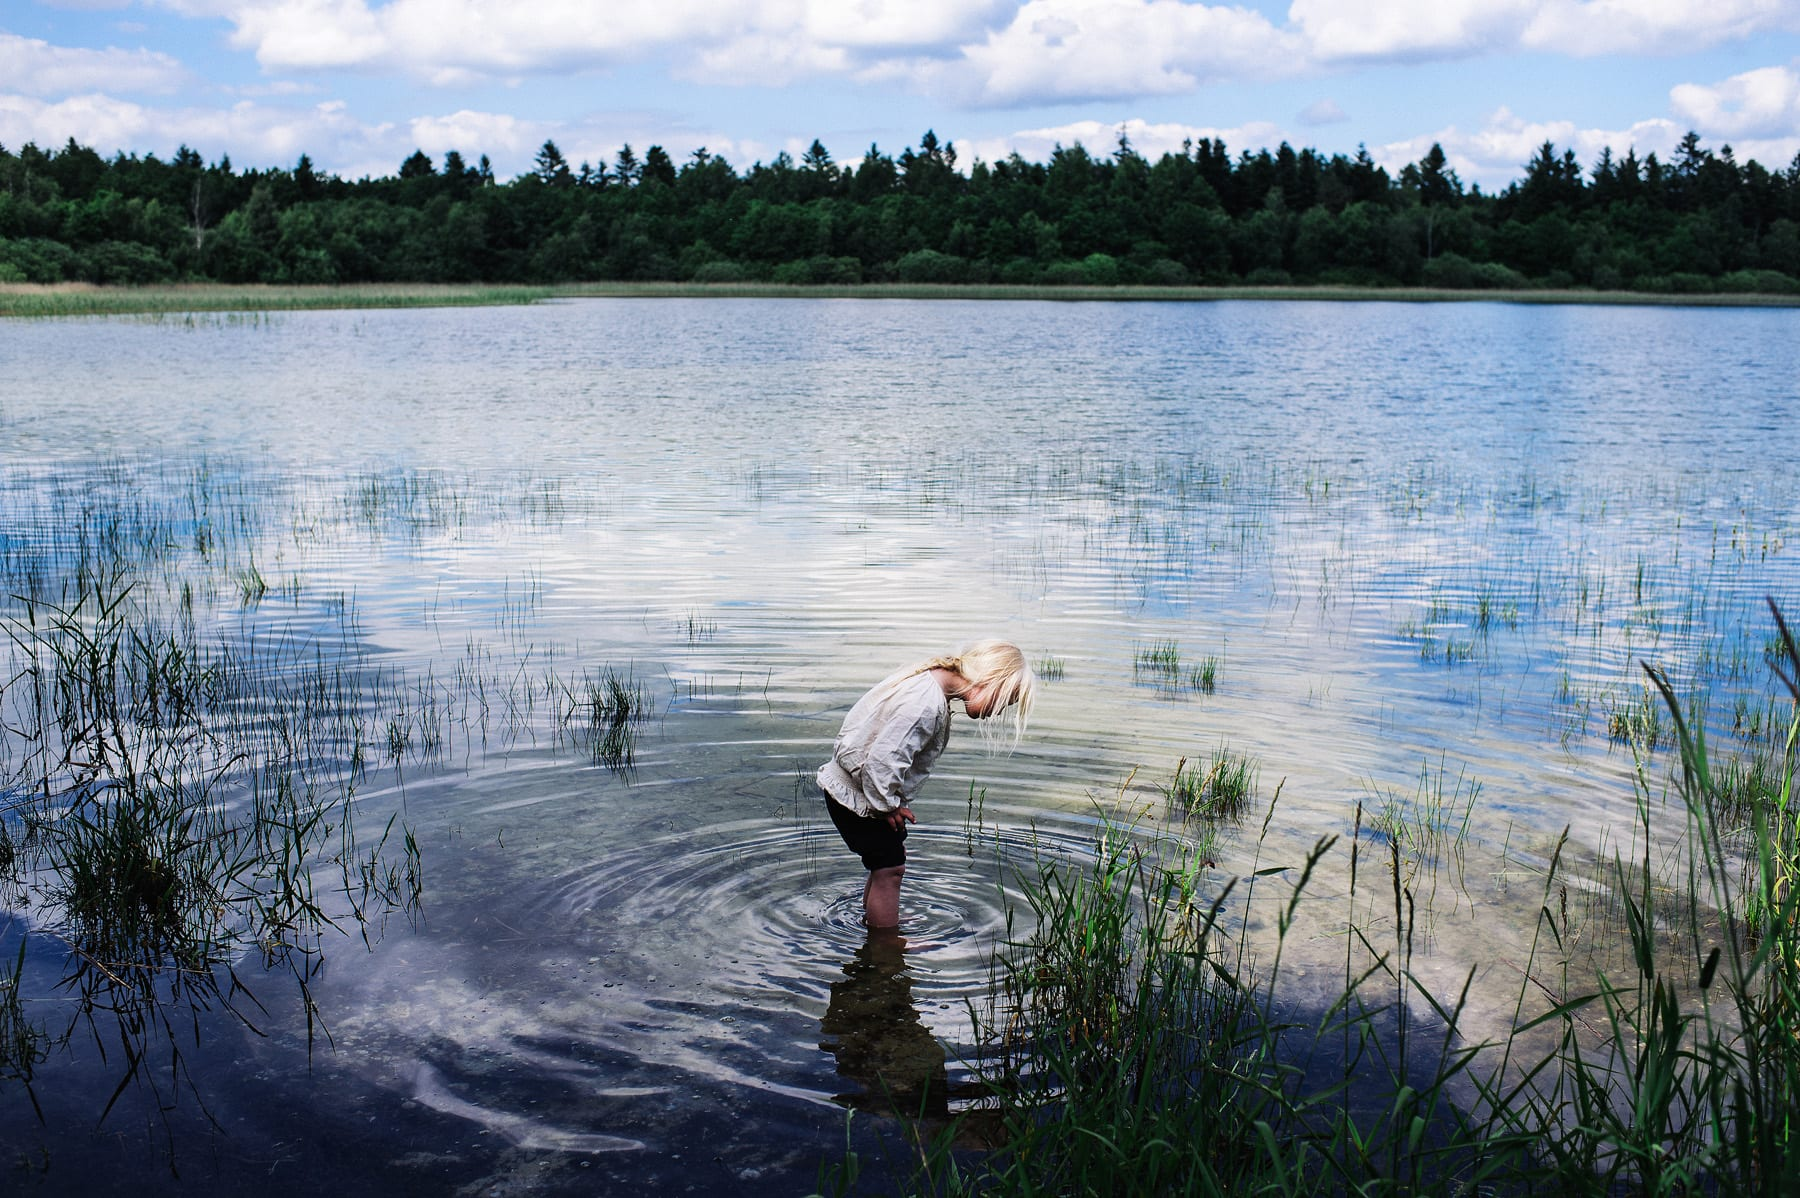 Europe, Denmark, Hampen Sø: Emmy is on a trip with her brother Kristian and her Grandmother. After playin in the forest for a while she cools down her feet in the lake. She looks through the clear water on the ground of the lake and explores the water very slowly.